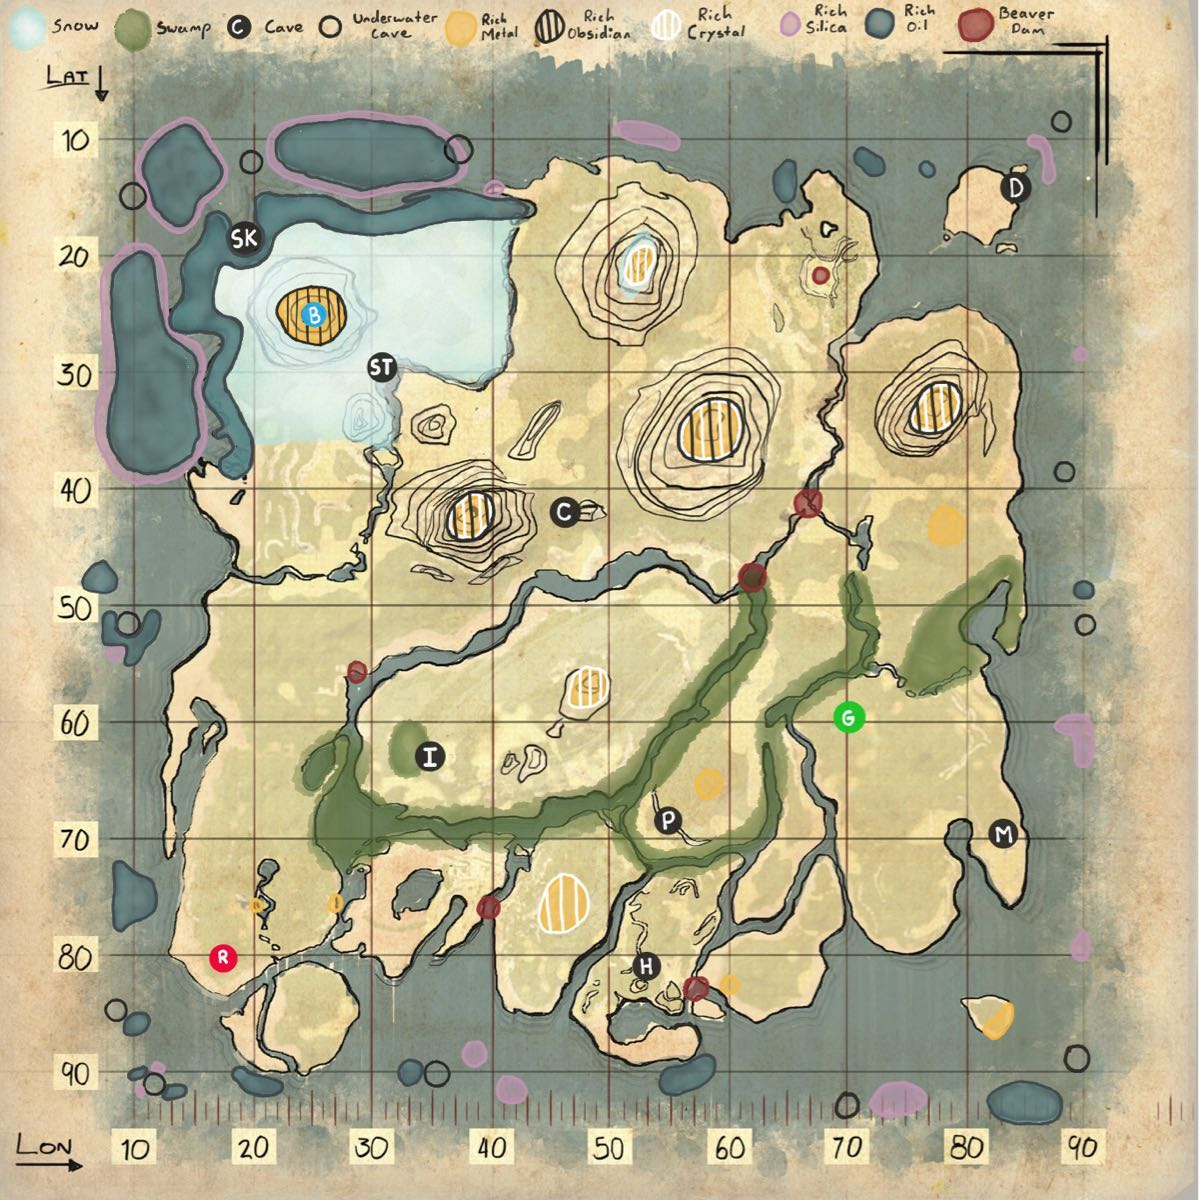 Useful Maps General Discussion Ark Official Community Forums It is said that a palace of pearls lies at the bottom of the ocean. useful maps general discussion ark